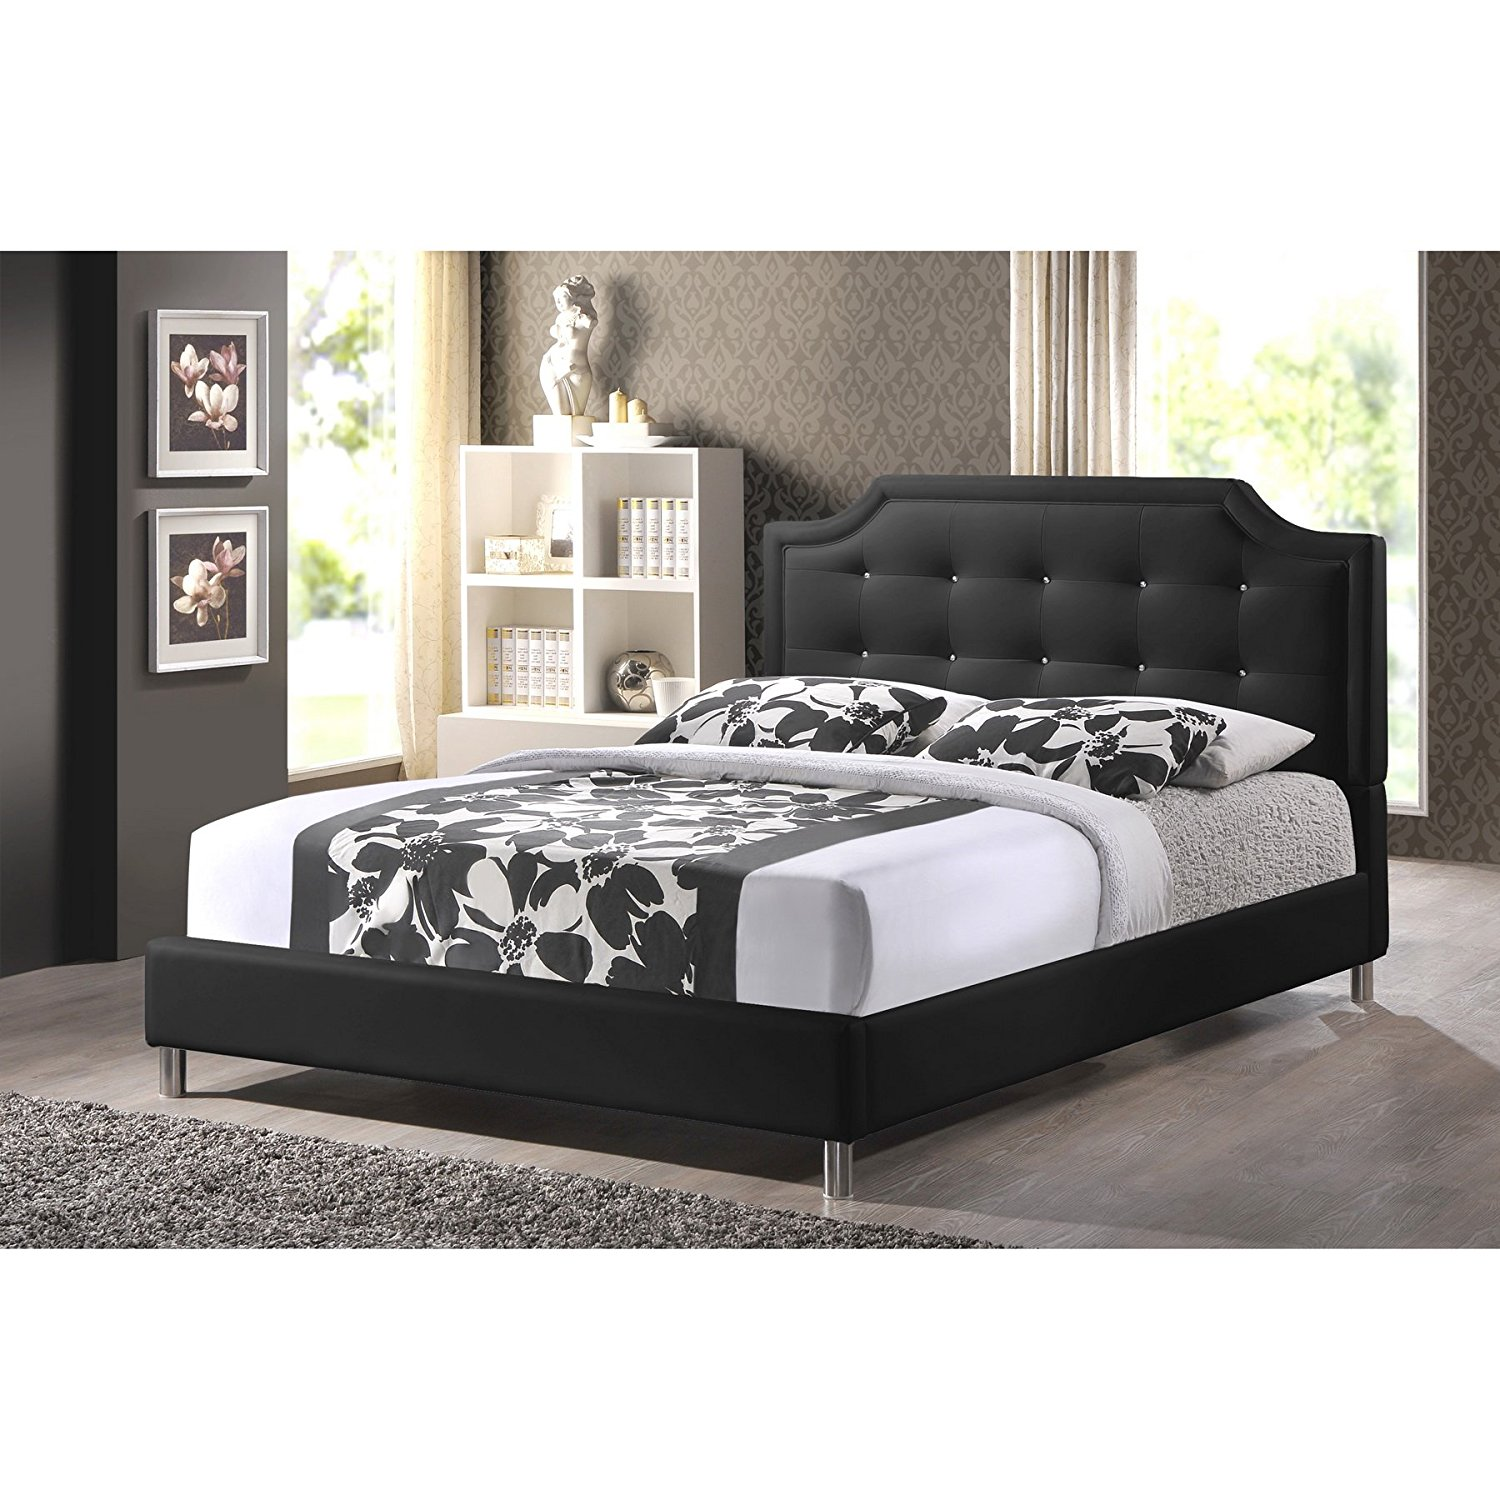 4ff5c33e1316 Details about Baxton Studio Carlotta Modern King Size Bed with Upholstered  Headboard in Black